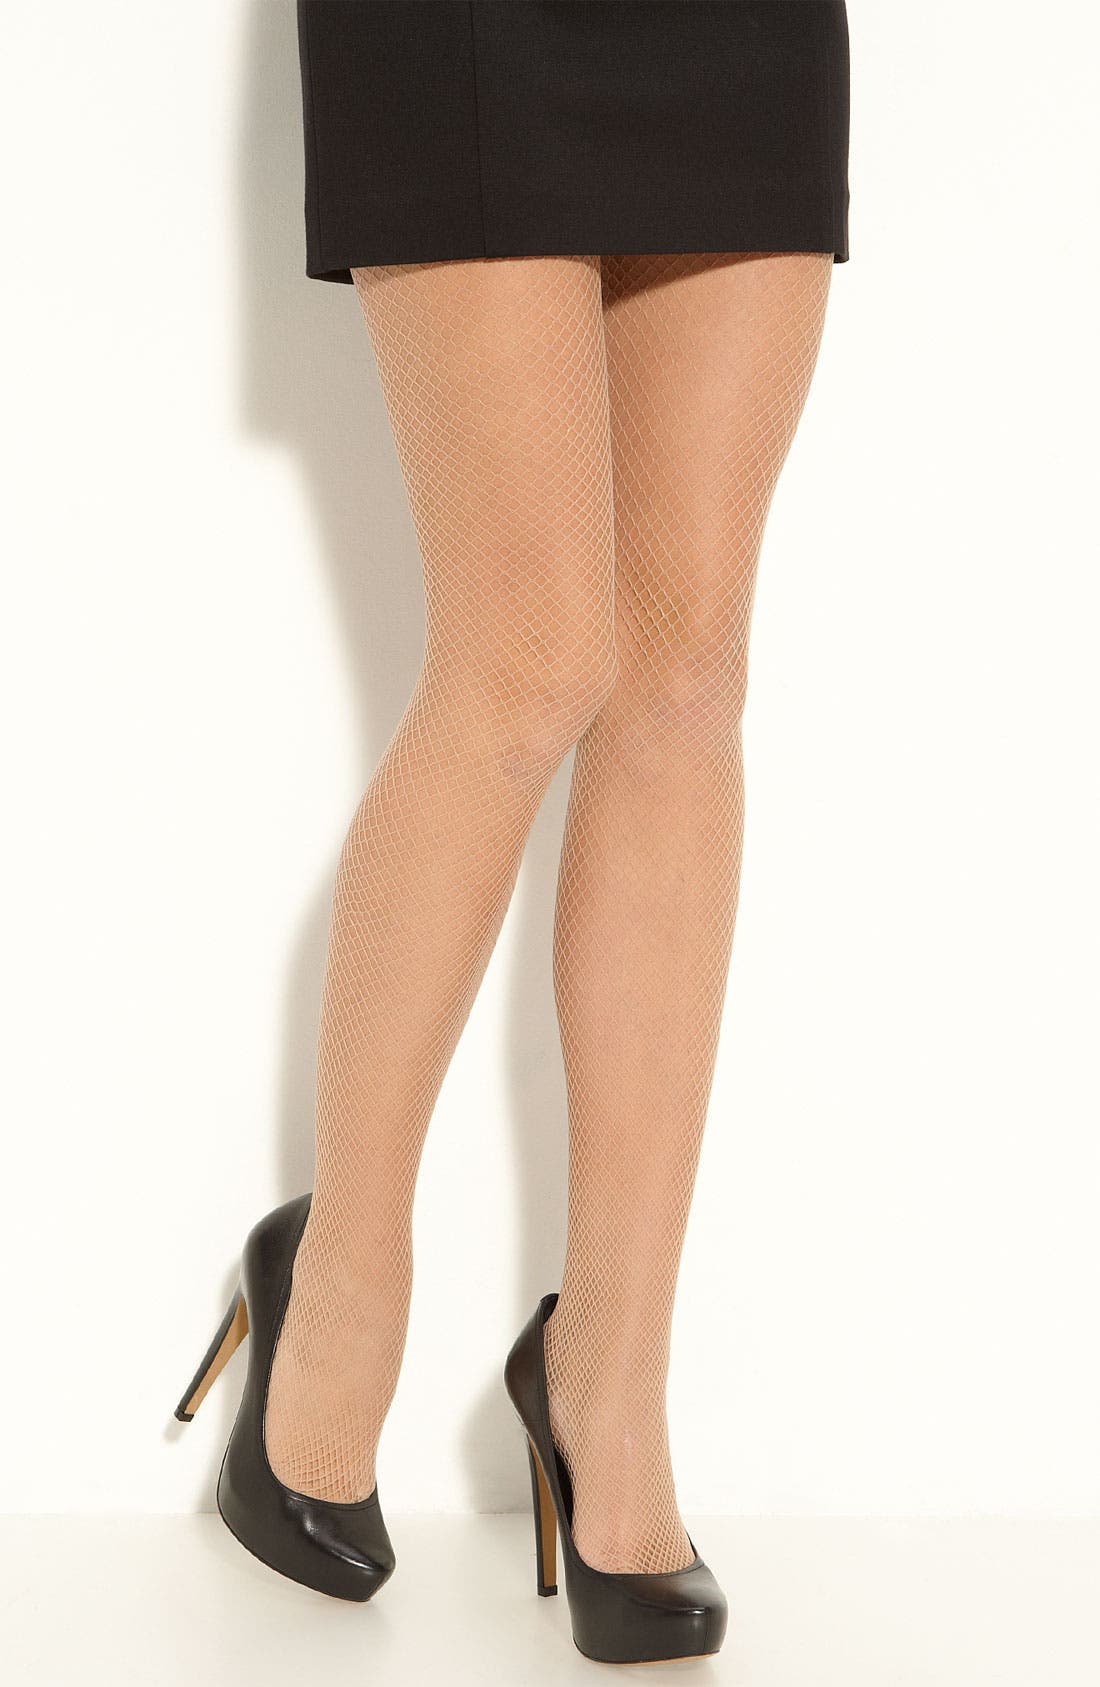 Alternate Image 1 Selected - Nordstrom Fishnet Tights (3 for $30)